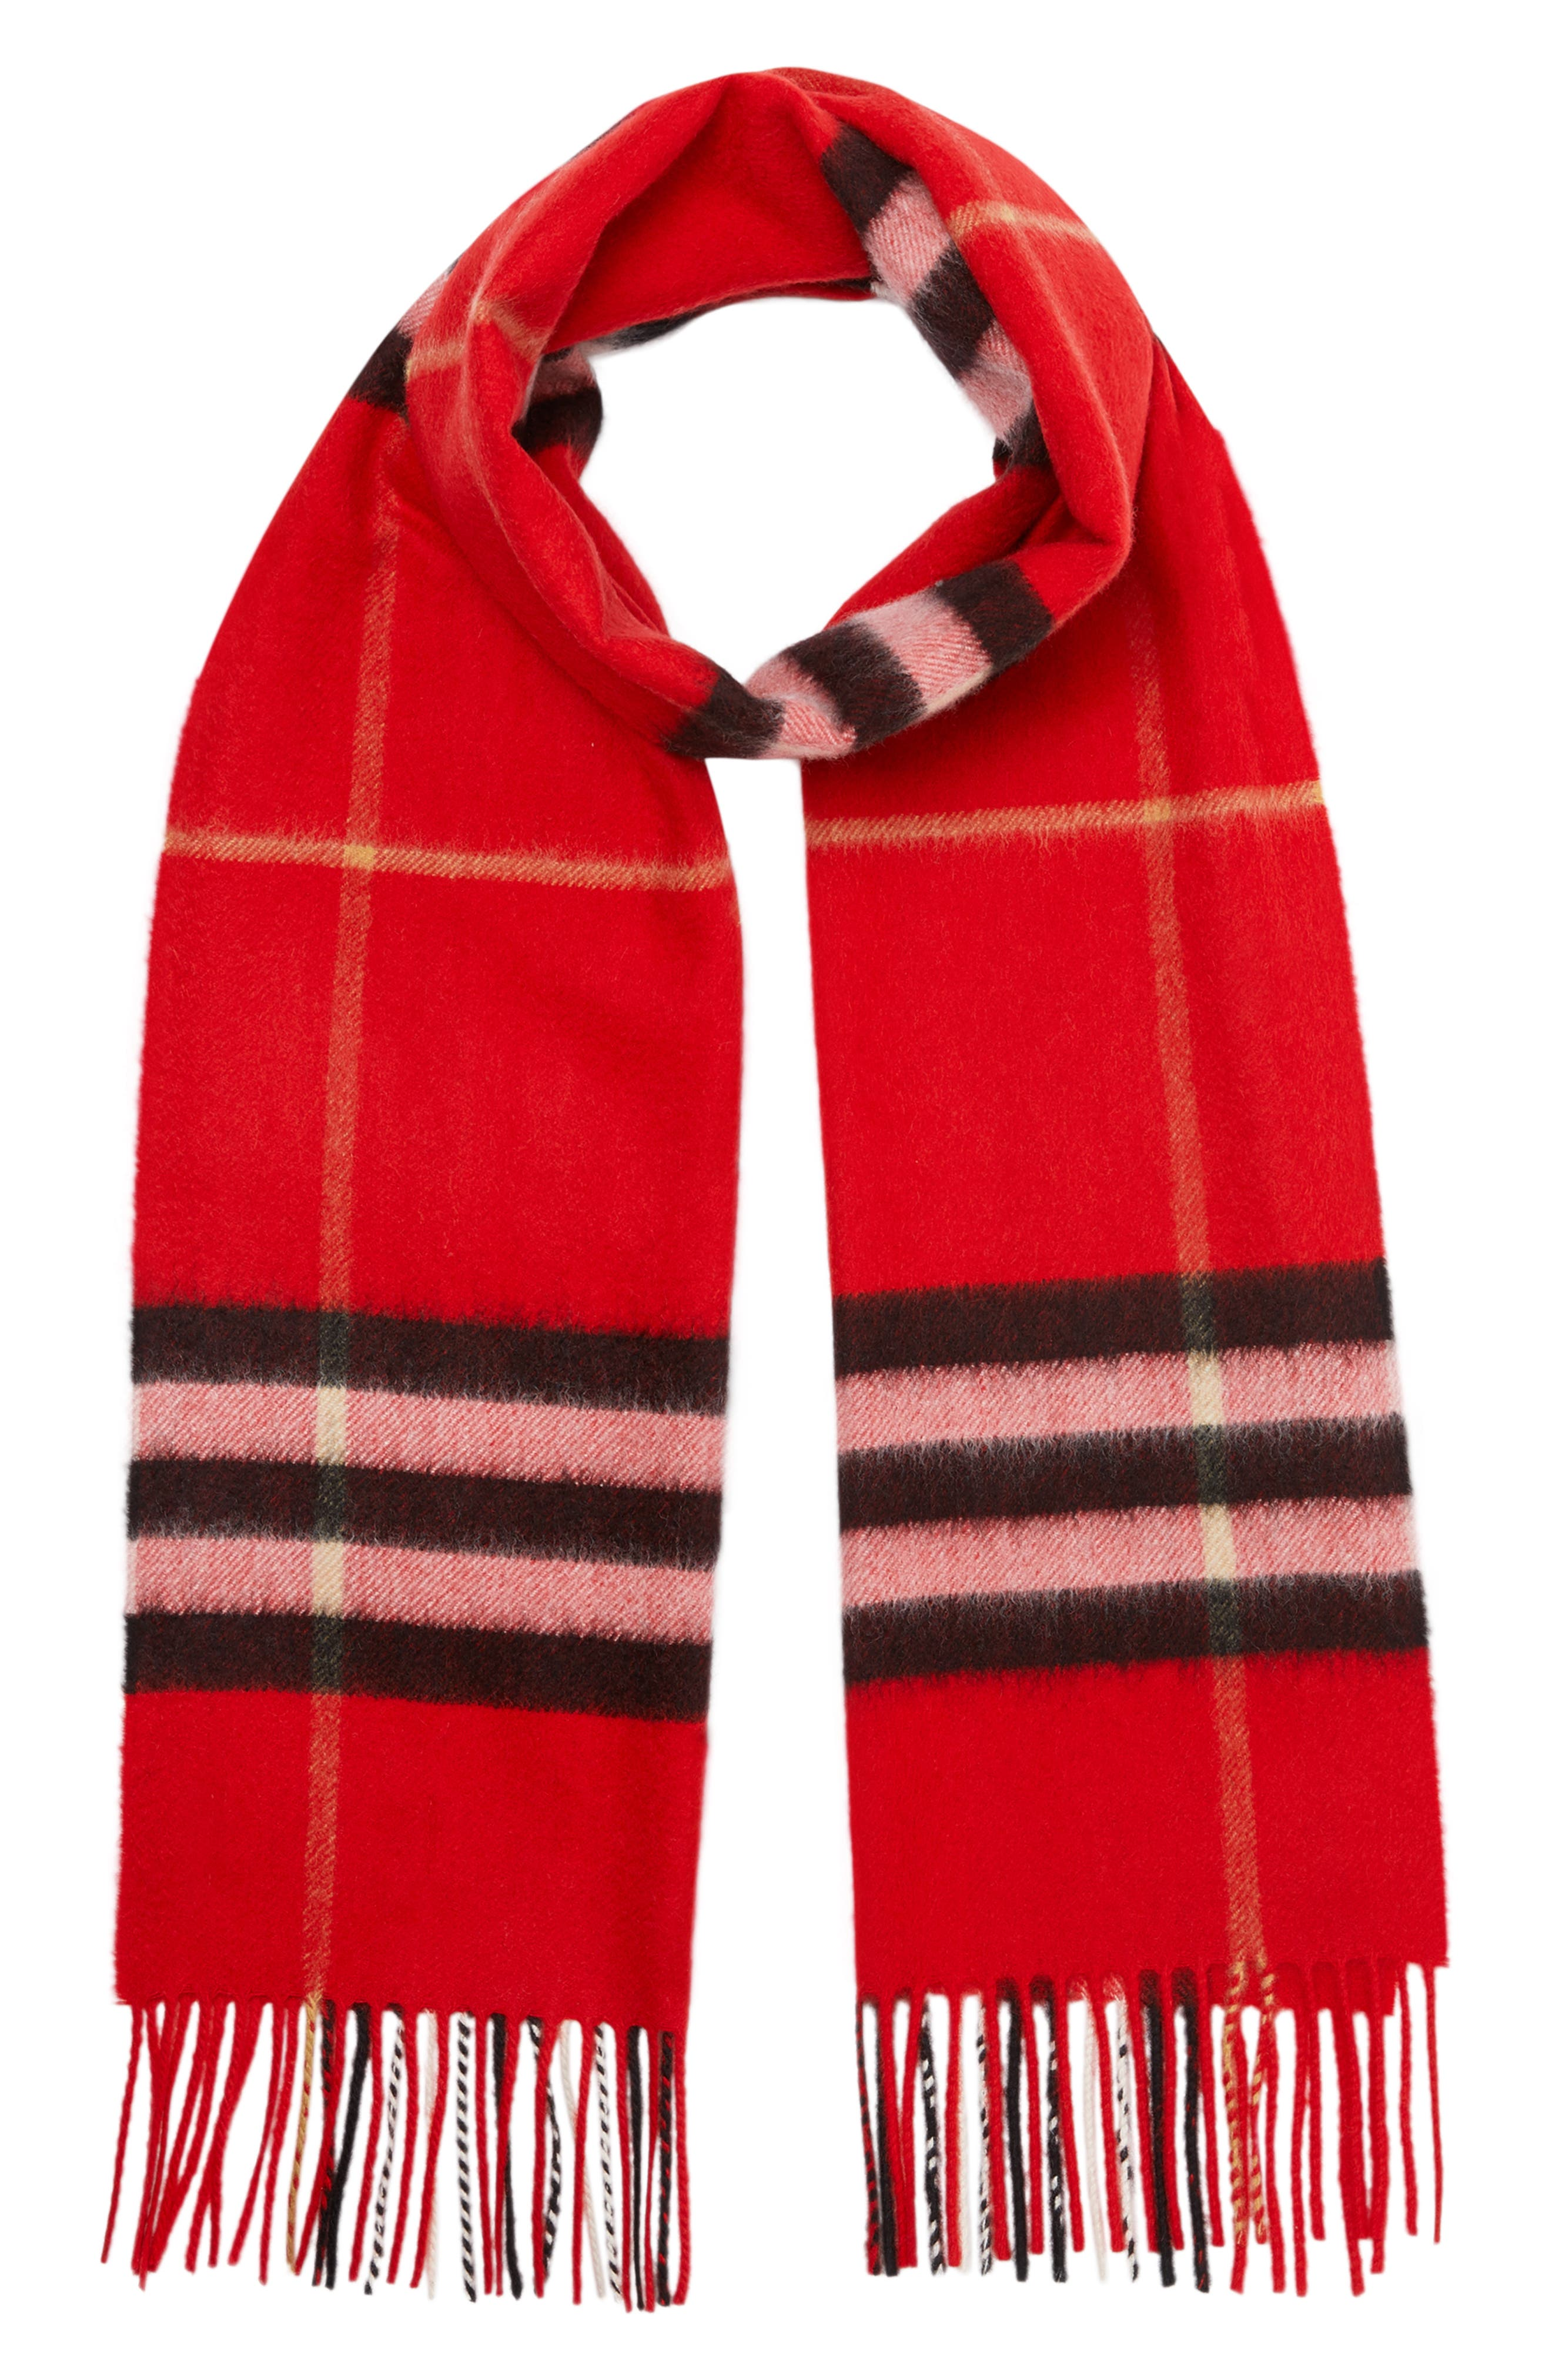 BURBERRY,                             Giant Check Cashmere Scarf,                             Alternate thumbnail 4, color,                             BRIGHT MILITARY RED